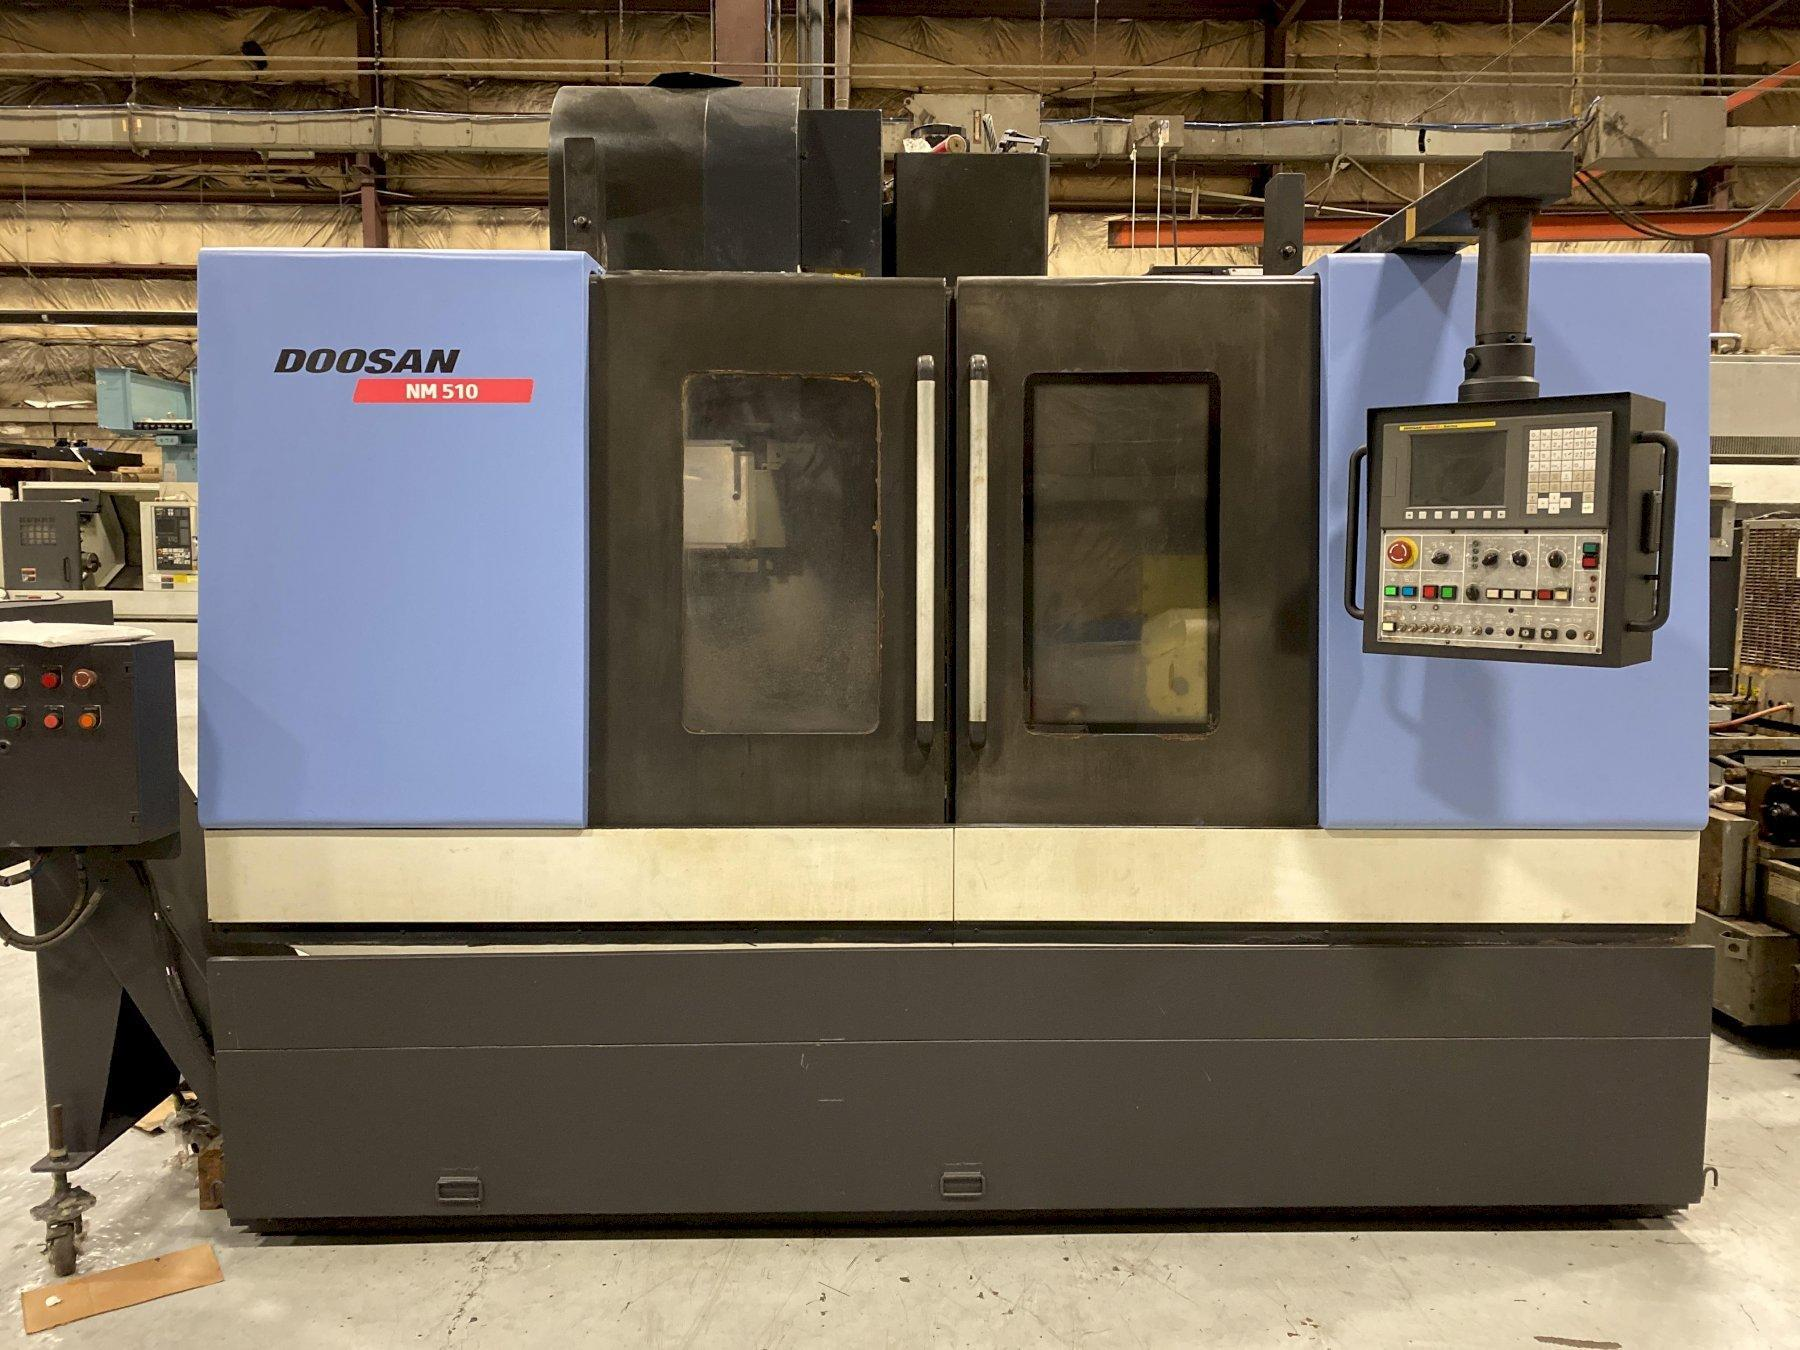 2008 DOOSAN NM 510 - Vertical Machining Center